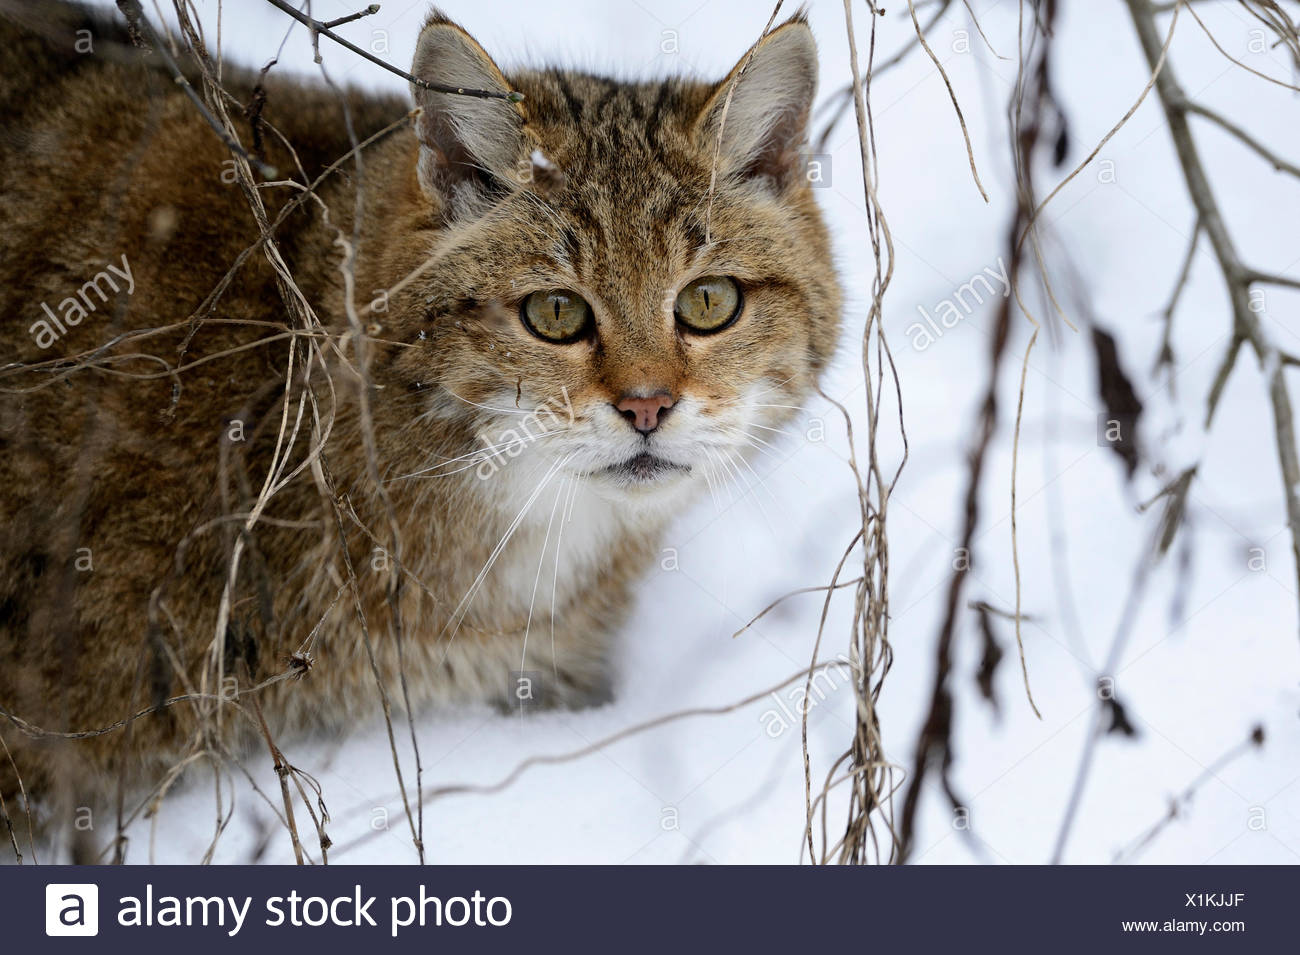 Wildcat predator game predator predators small cats cats cat wild cats Felis silvestris wildcats snow winter animal animals, - Stock Image